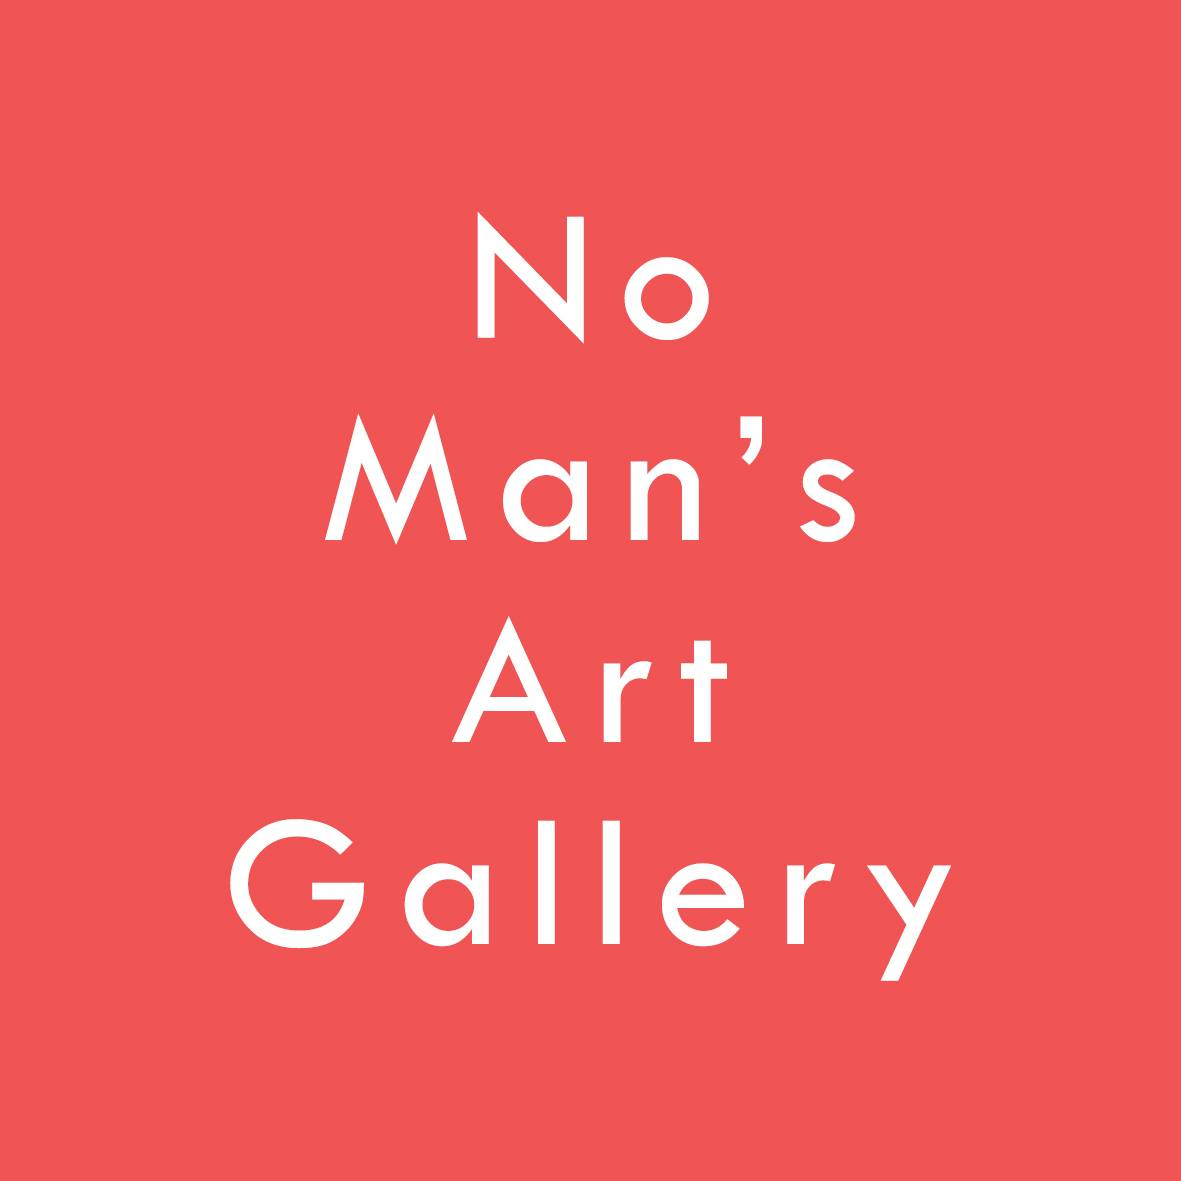 No Man's Art Gallery